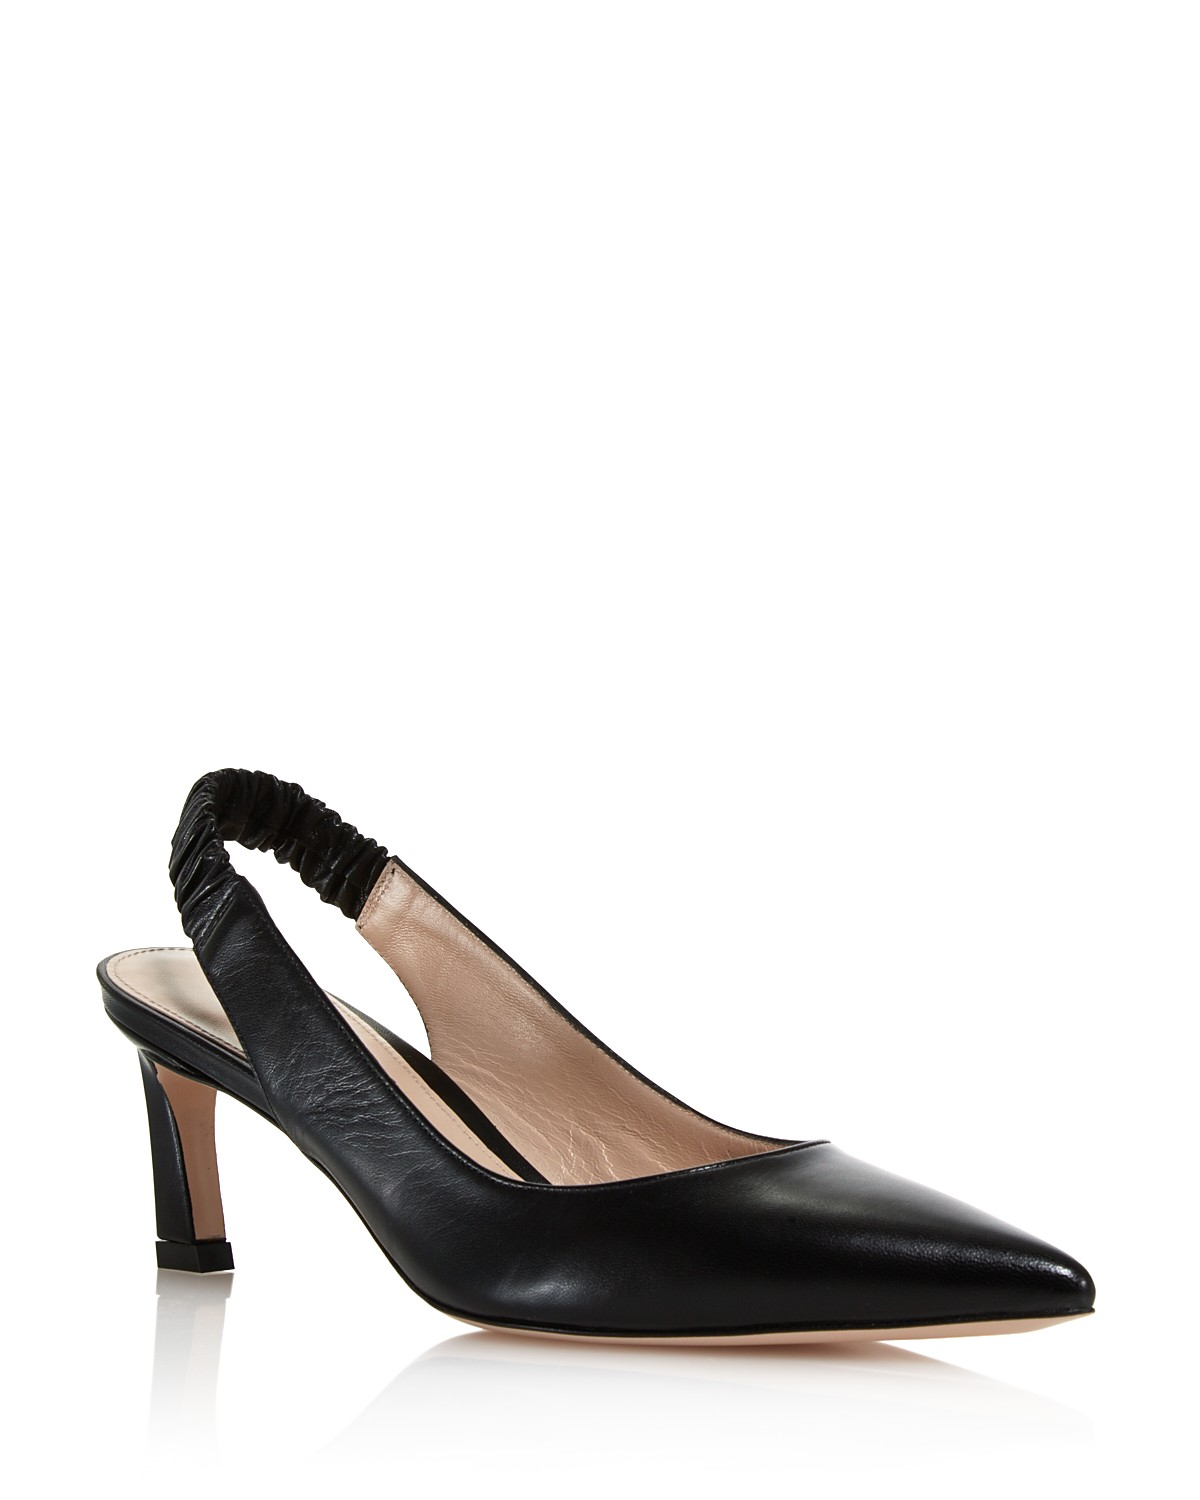 Stuart Weitzman Leather Pointed-Toe Slingbacks Grey outlet store online discounts nKQbdidu